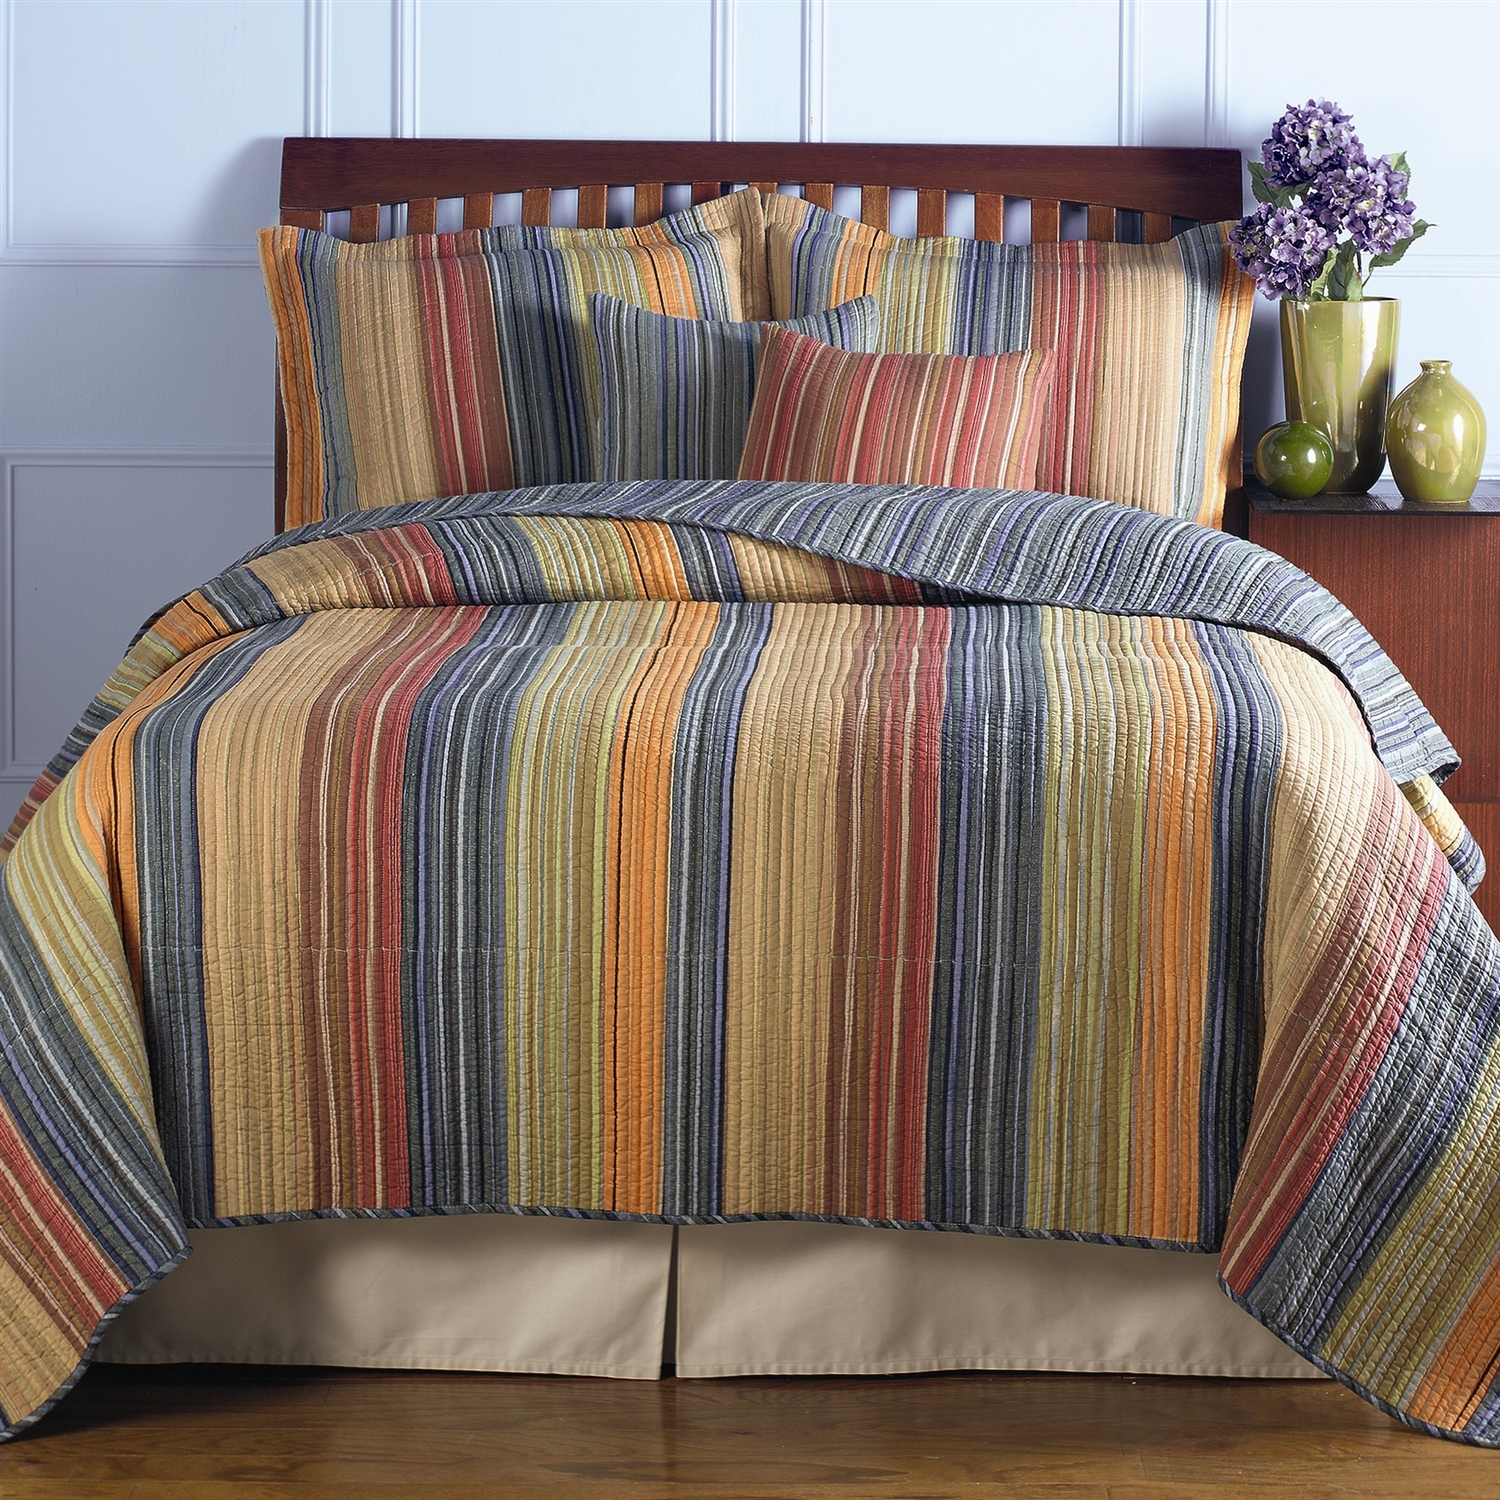 King Size 100 Cotton Quilt Set With Brown Orange Red Blue